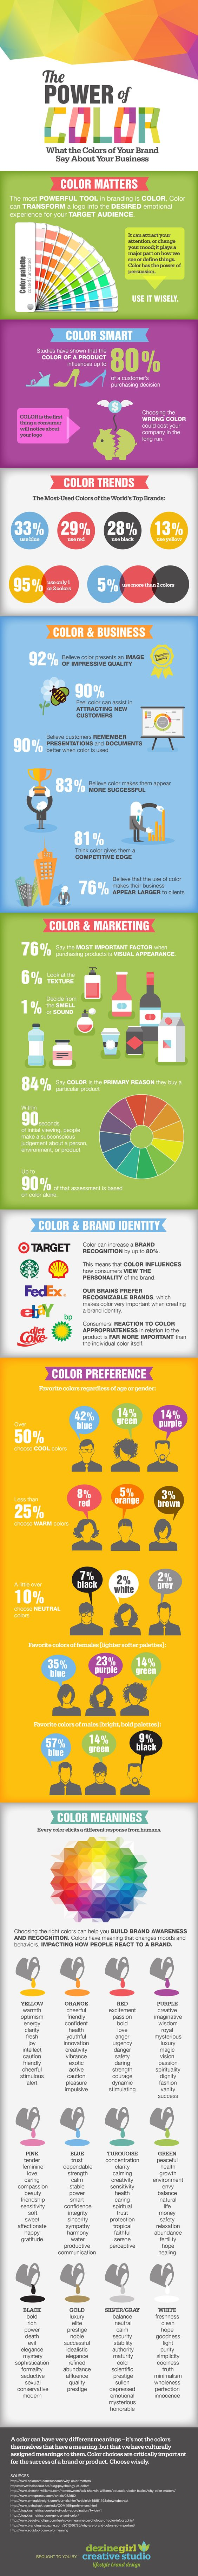 The Power of Color: